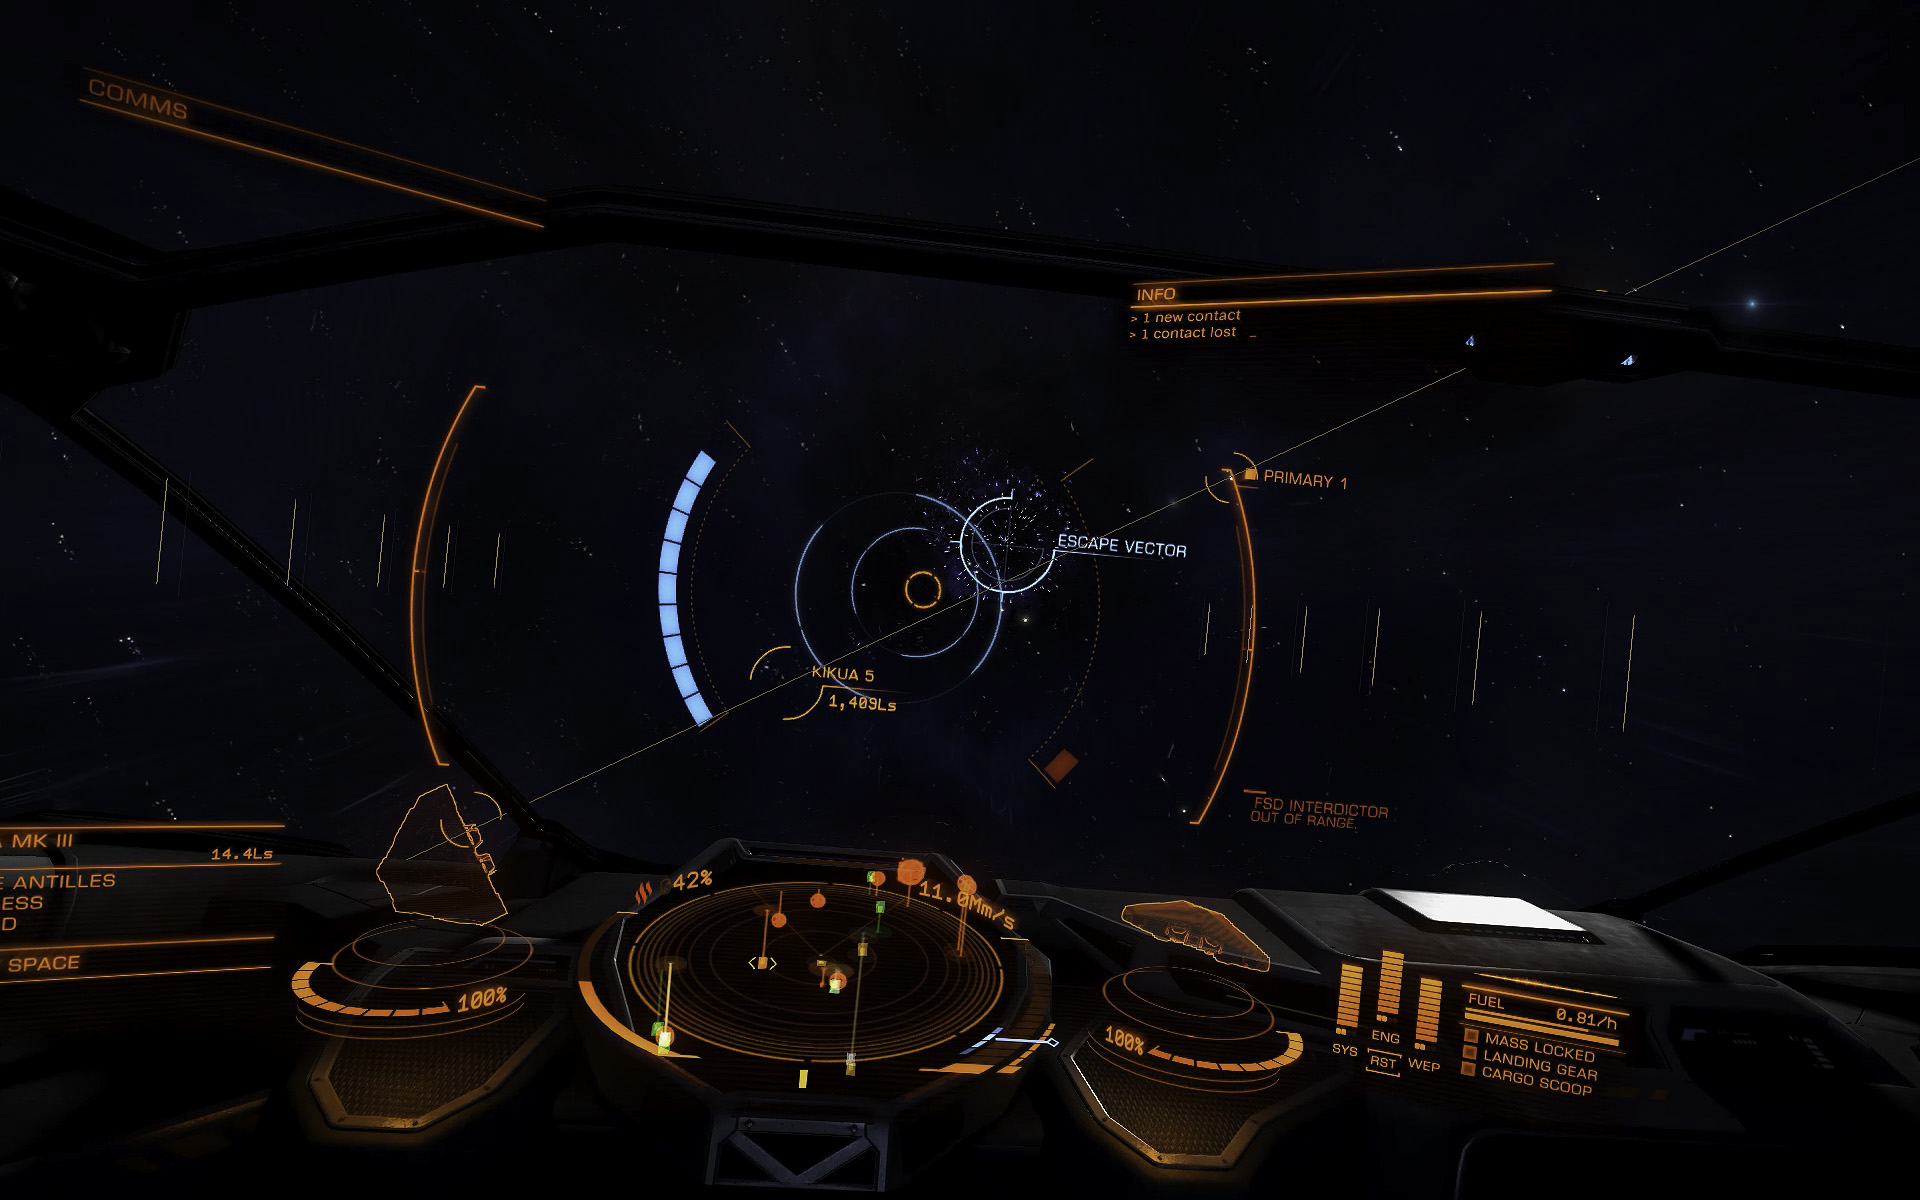 Interdiction is a way to pull ships out of SC and requires a special module. The interdictor has to remain on the tail of the target ship for success; the target can evade interdiction by remaining aligned with the escape vector. It's a battle of the blue and red power bars (here I'm successfully escaping interdiction)